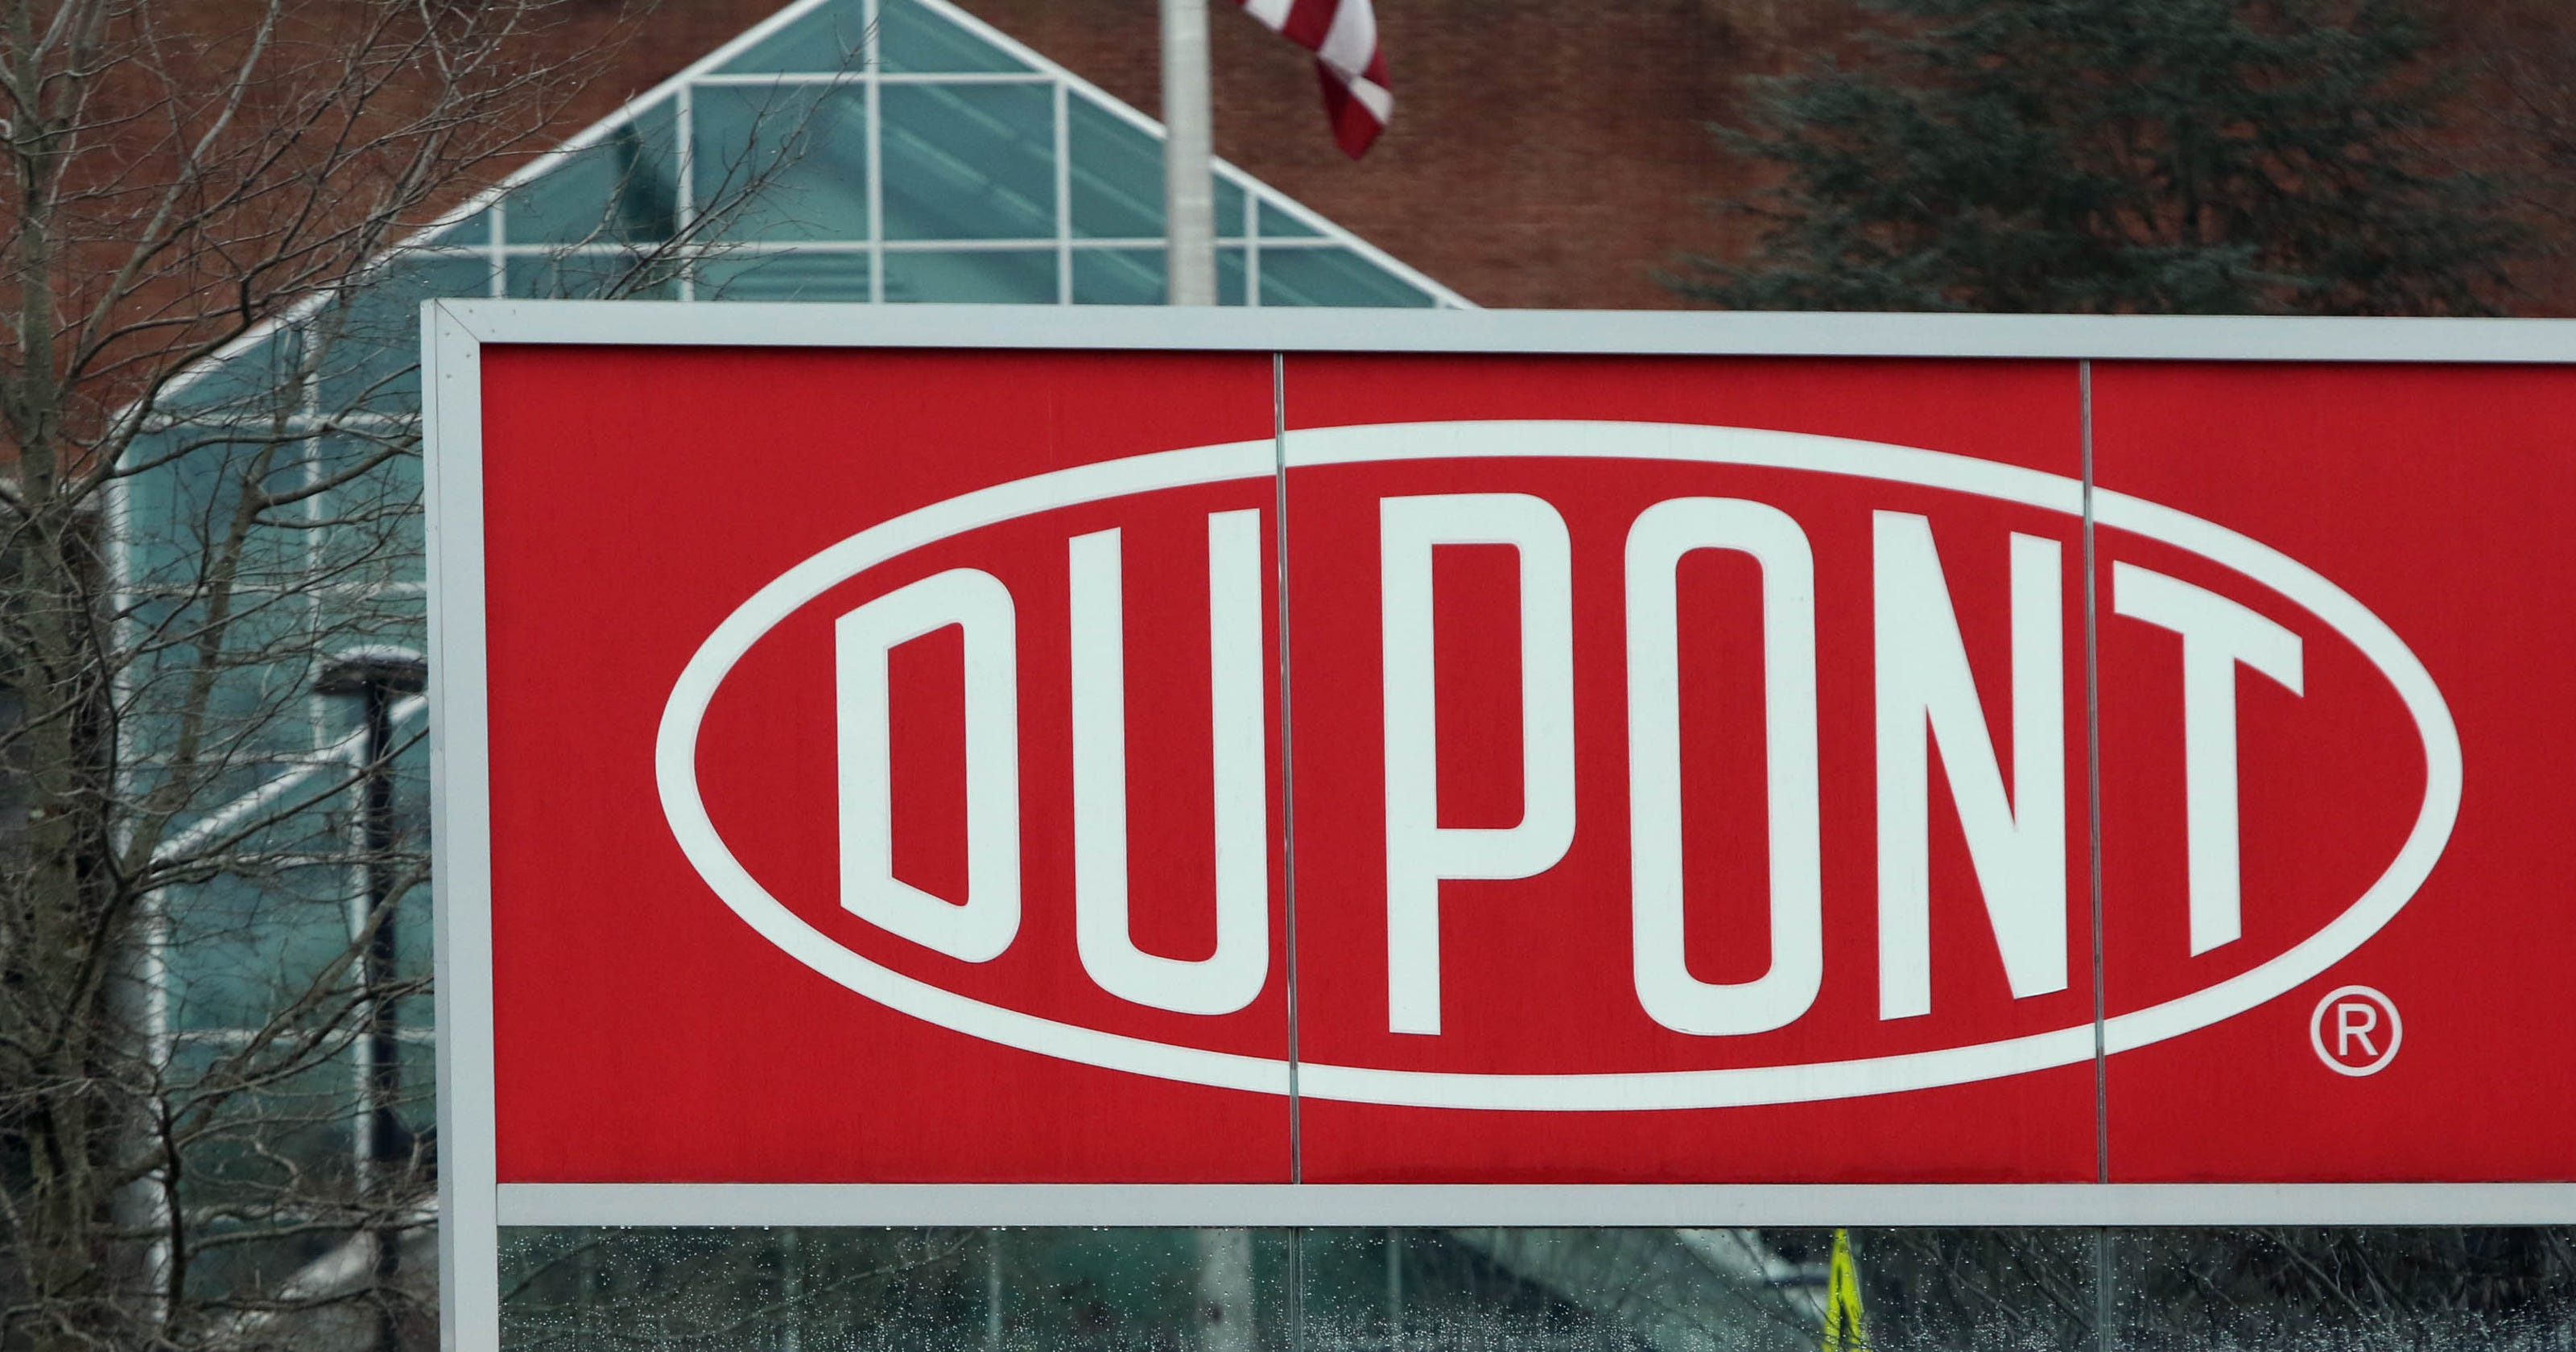 Murphy administration sues DuPont, 3M for selling toxic firefighting